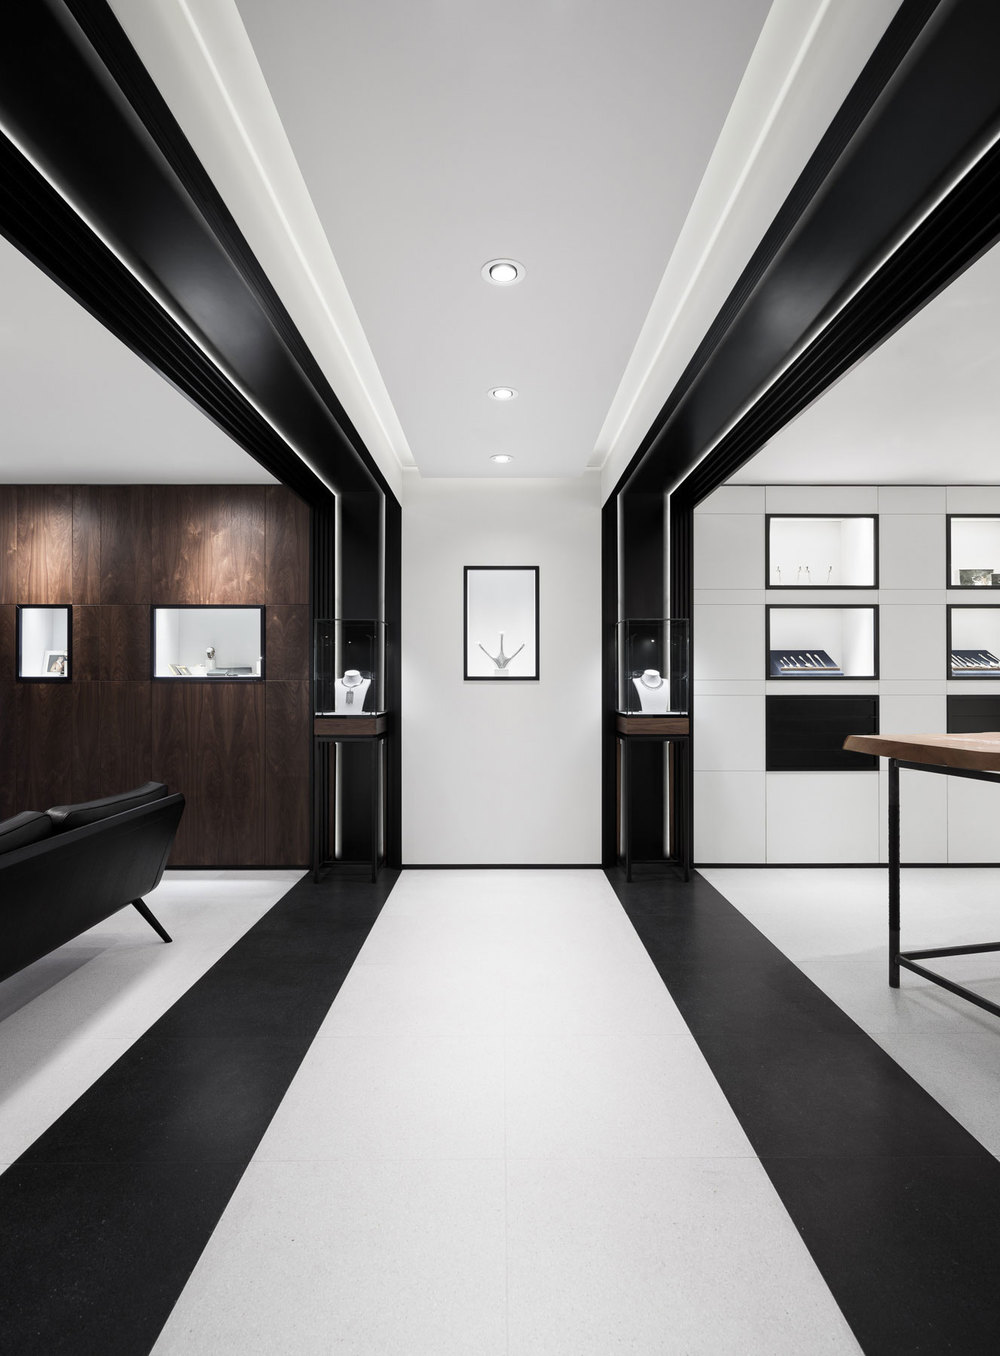 David thulstrup designs symmetrical space for georg jensen for Symmetrical interior design